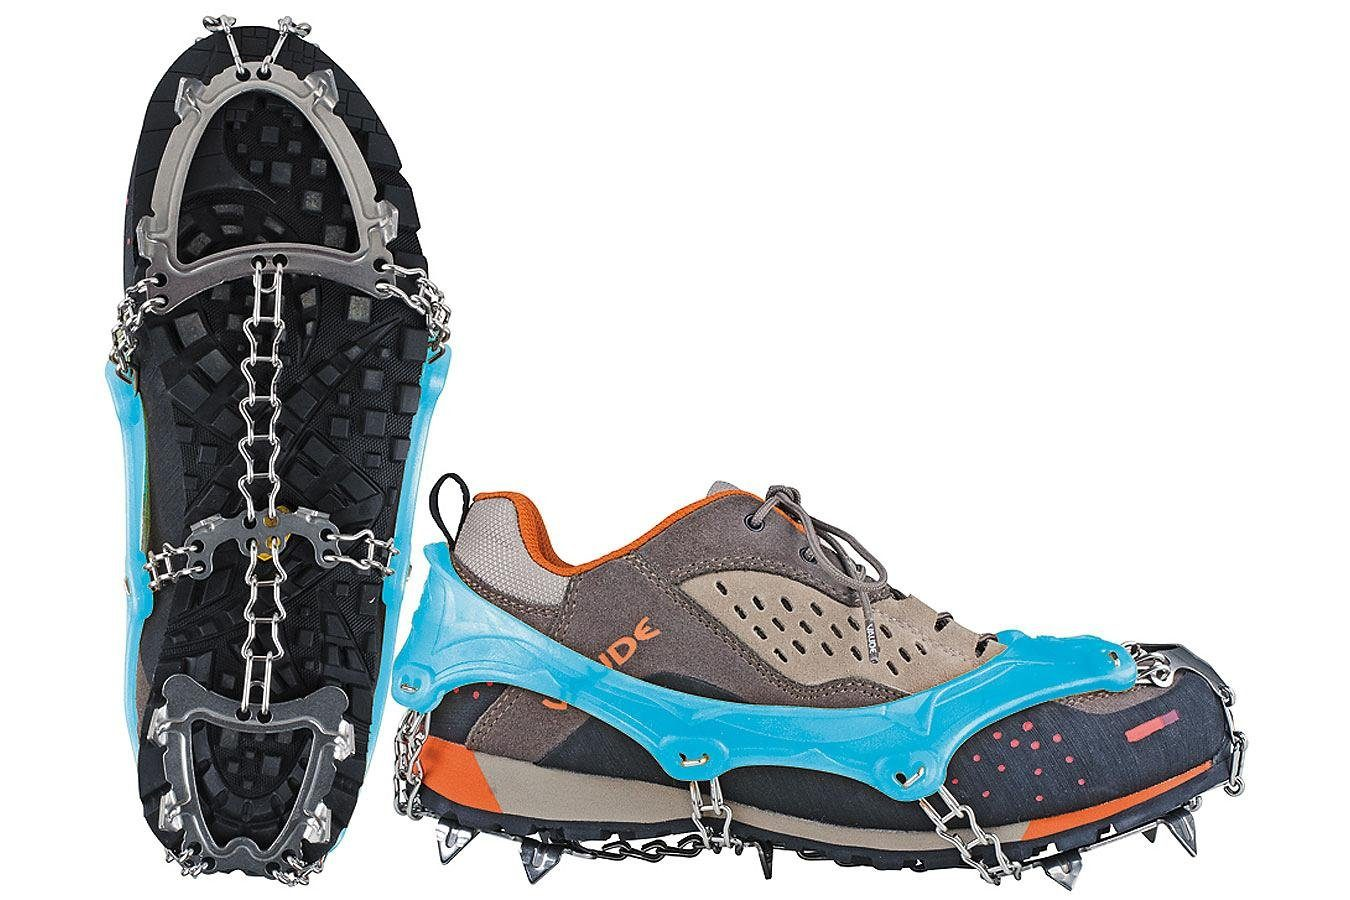 Edelrid Grödel »Spiderpick Crampon Shoes XL«